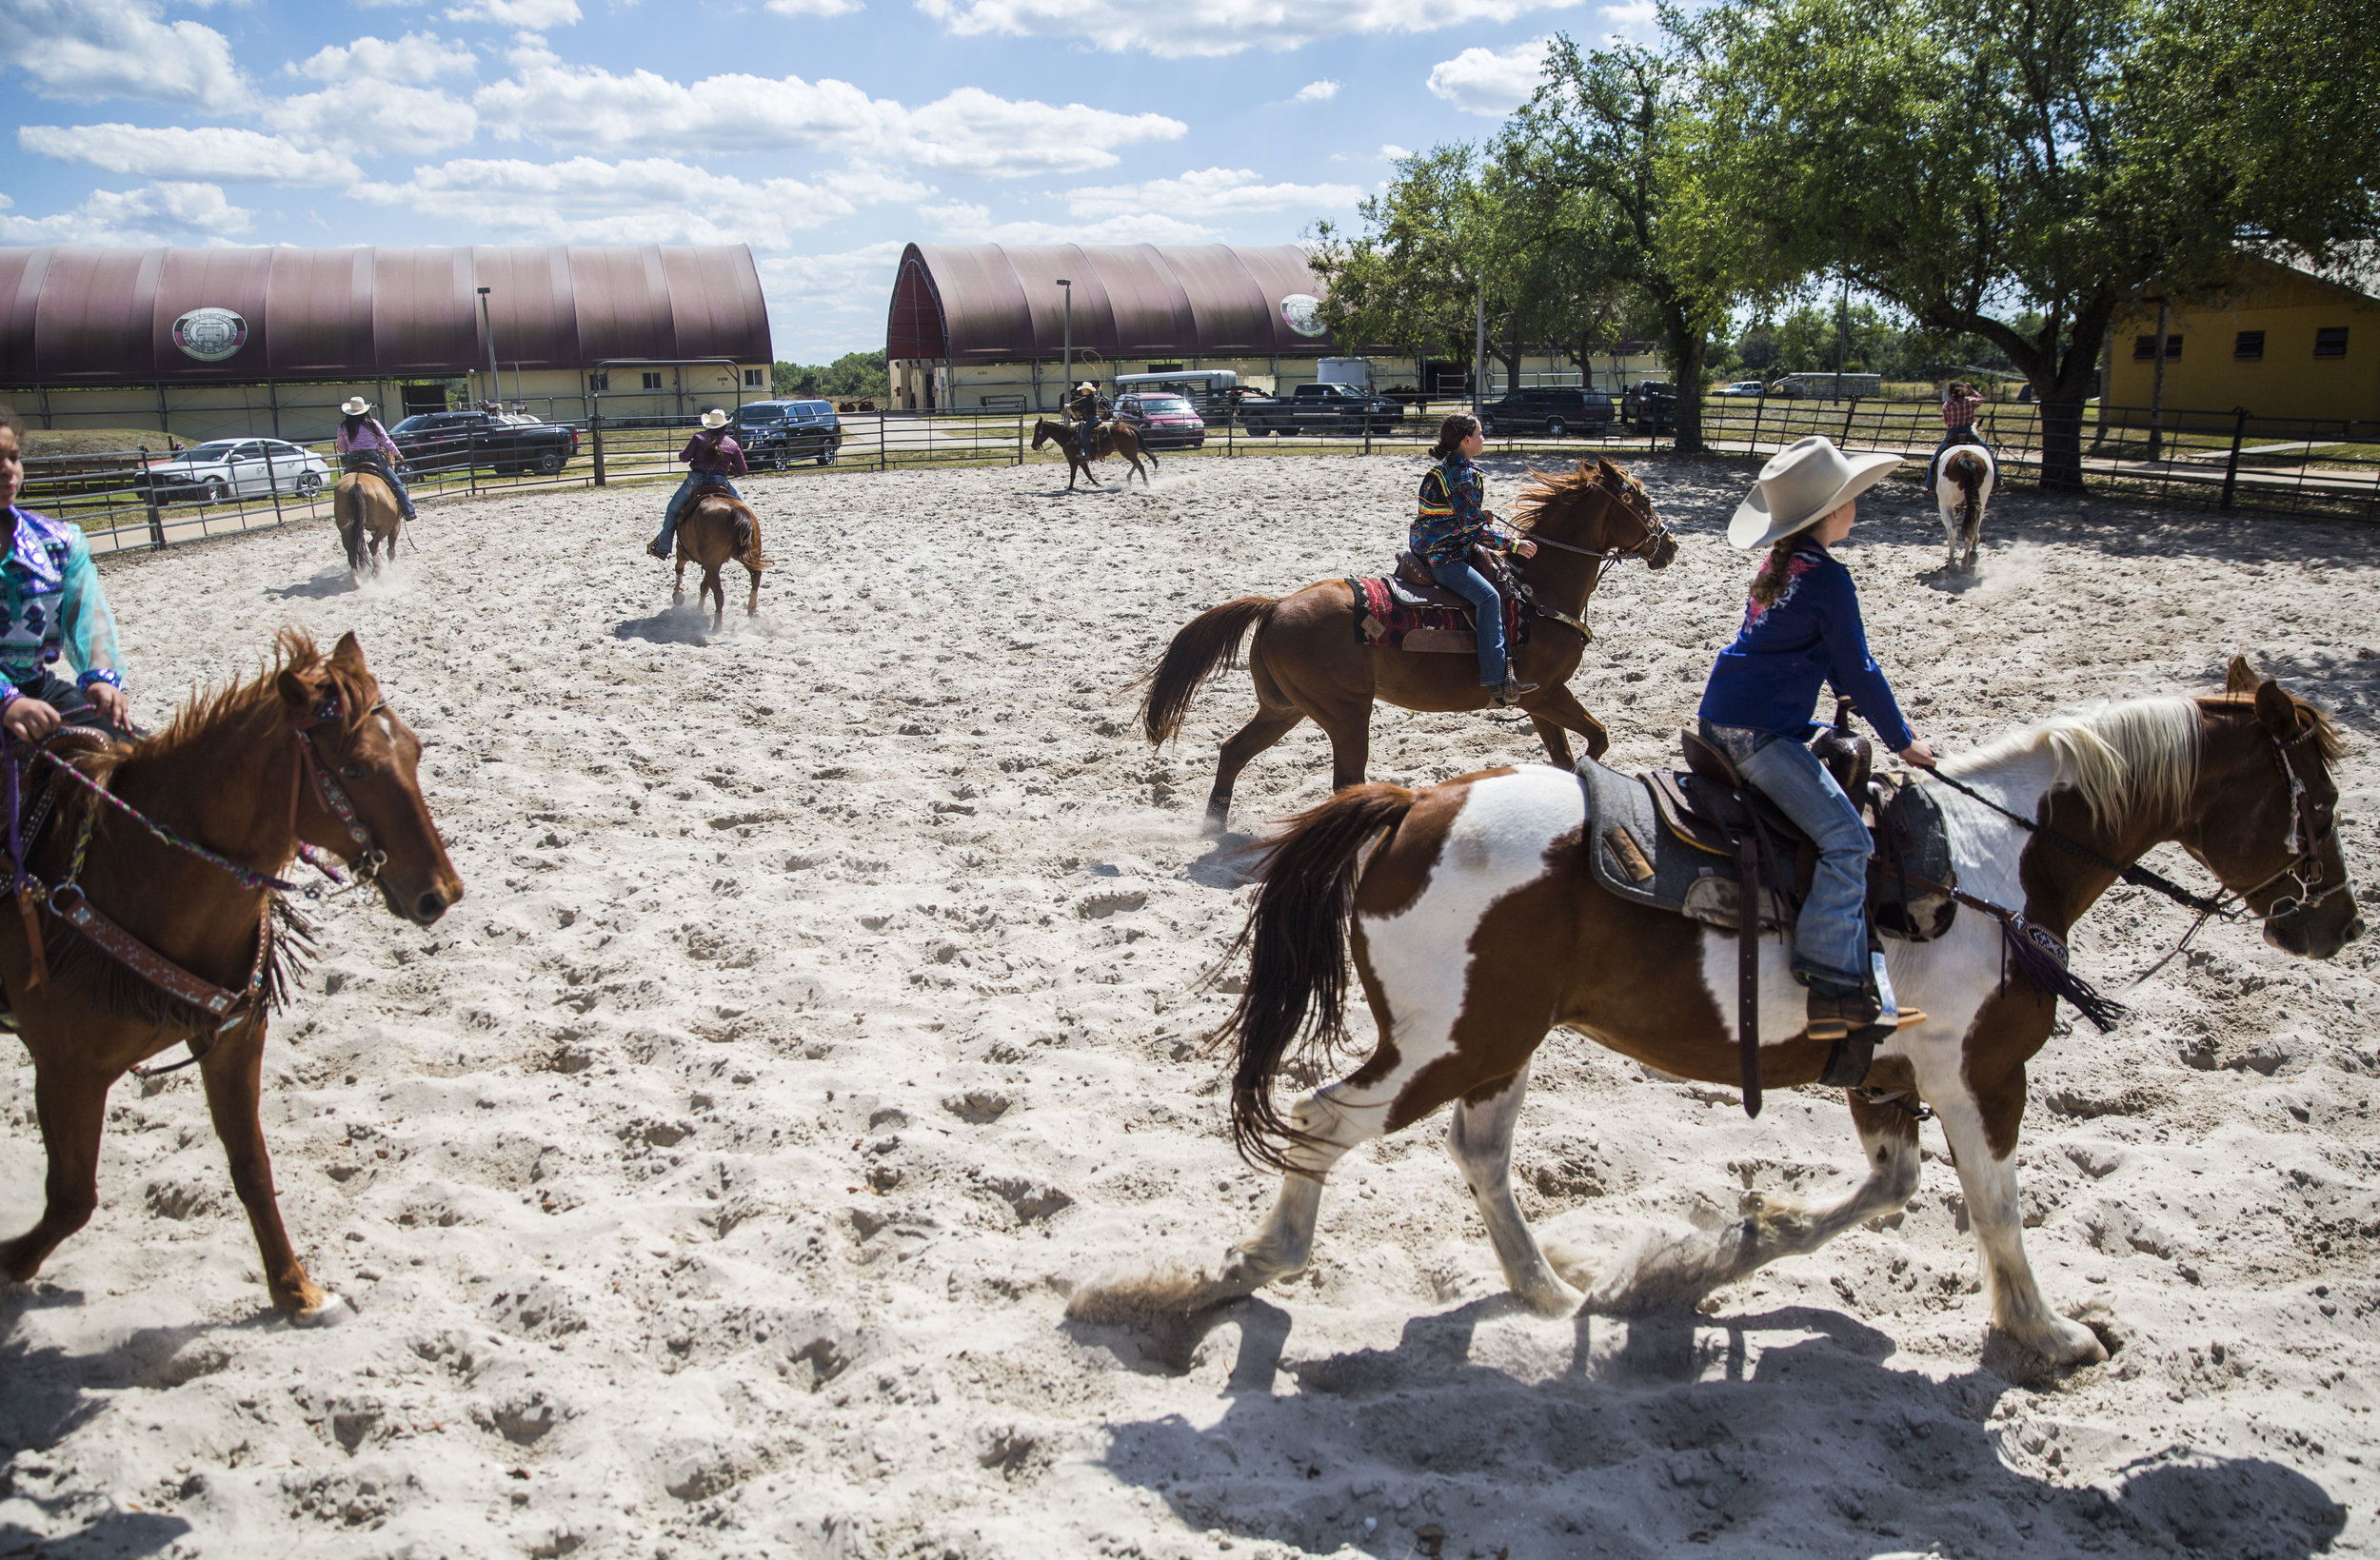 Rodeo participants warm up in the outdoor arena during the Junior Cypress Memorial Rodeo at the Junior Cypress Rodeo Arena in Clewiston, Fla. on Saturday, March 17, 2018.